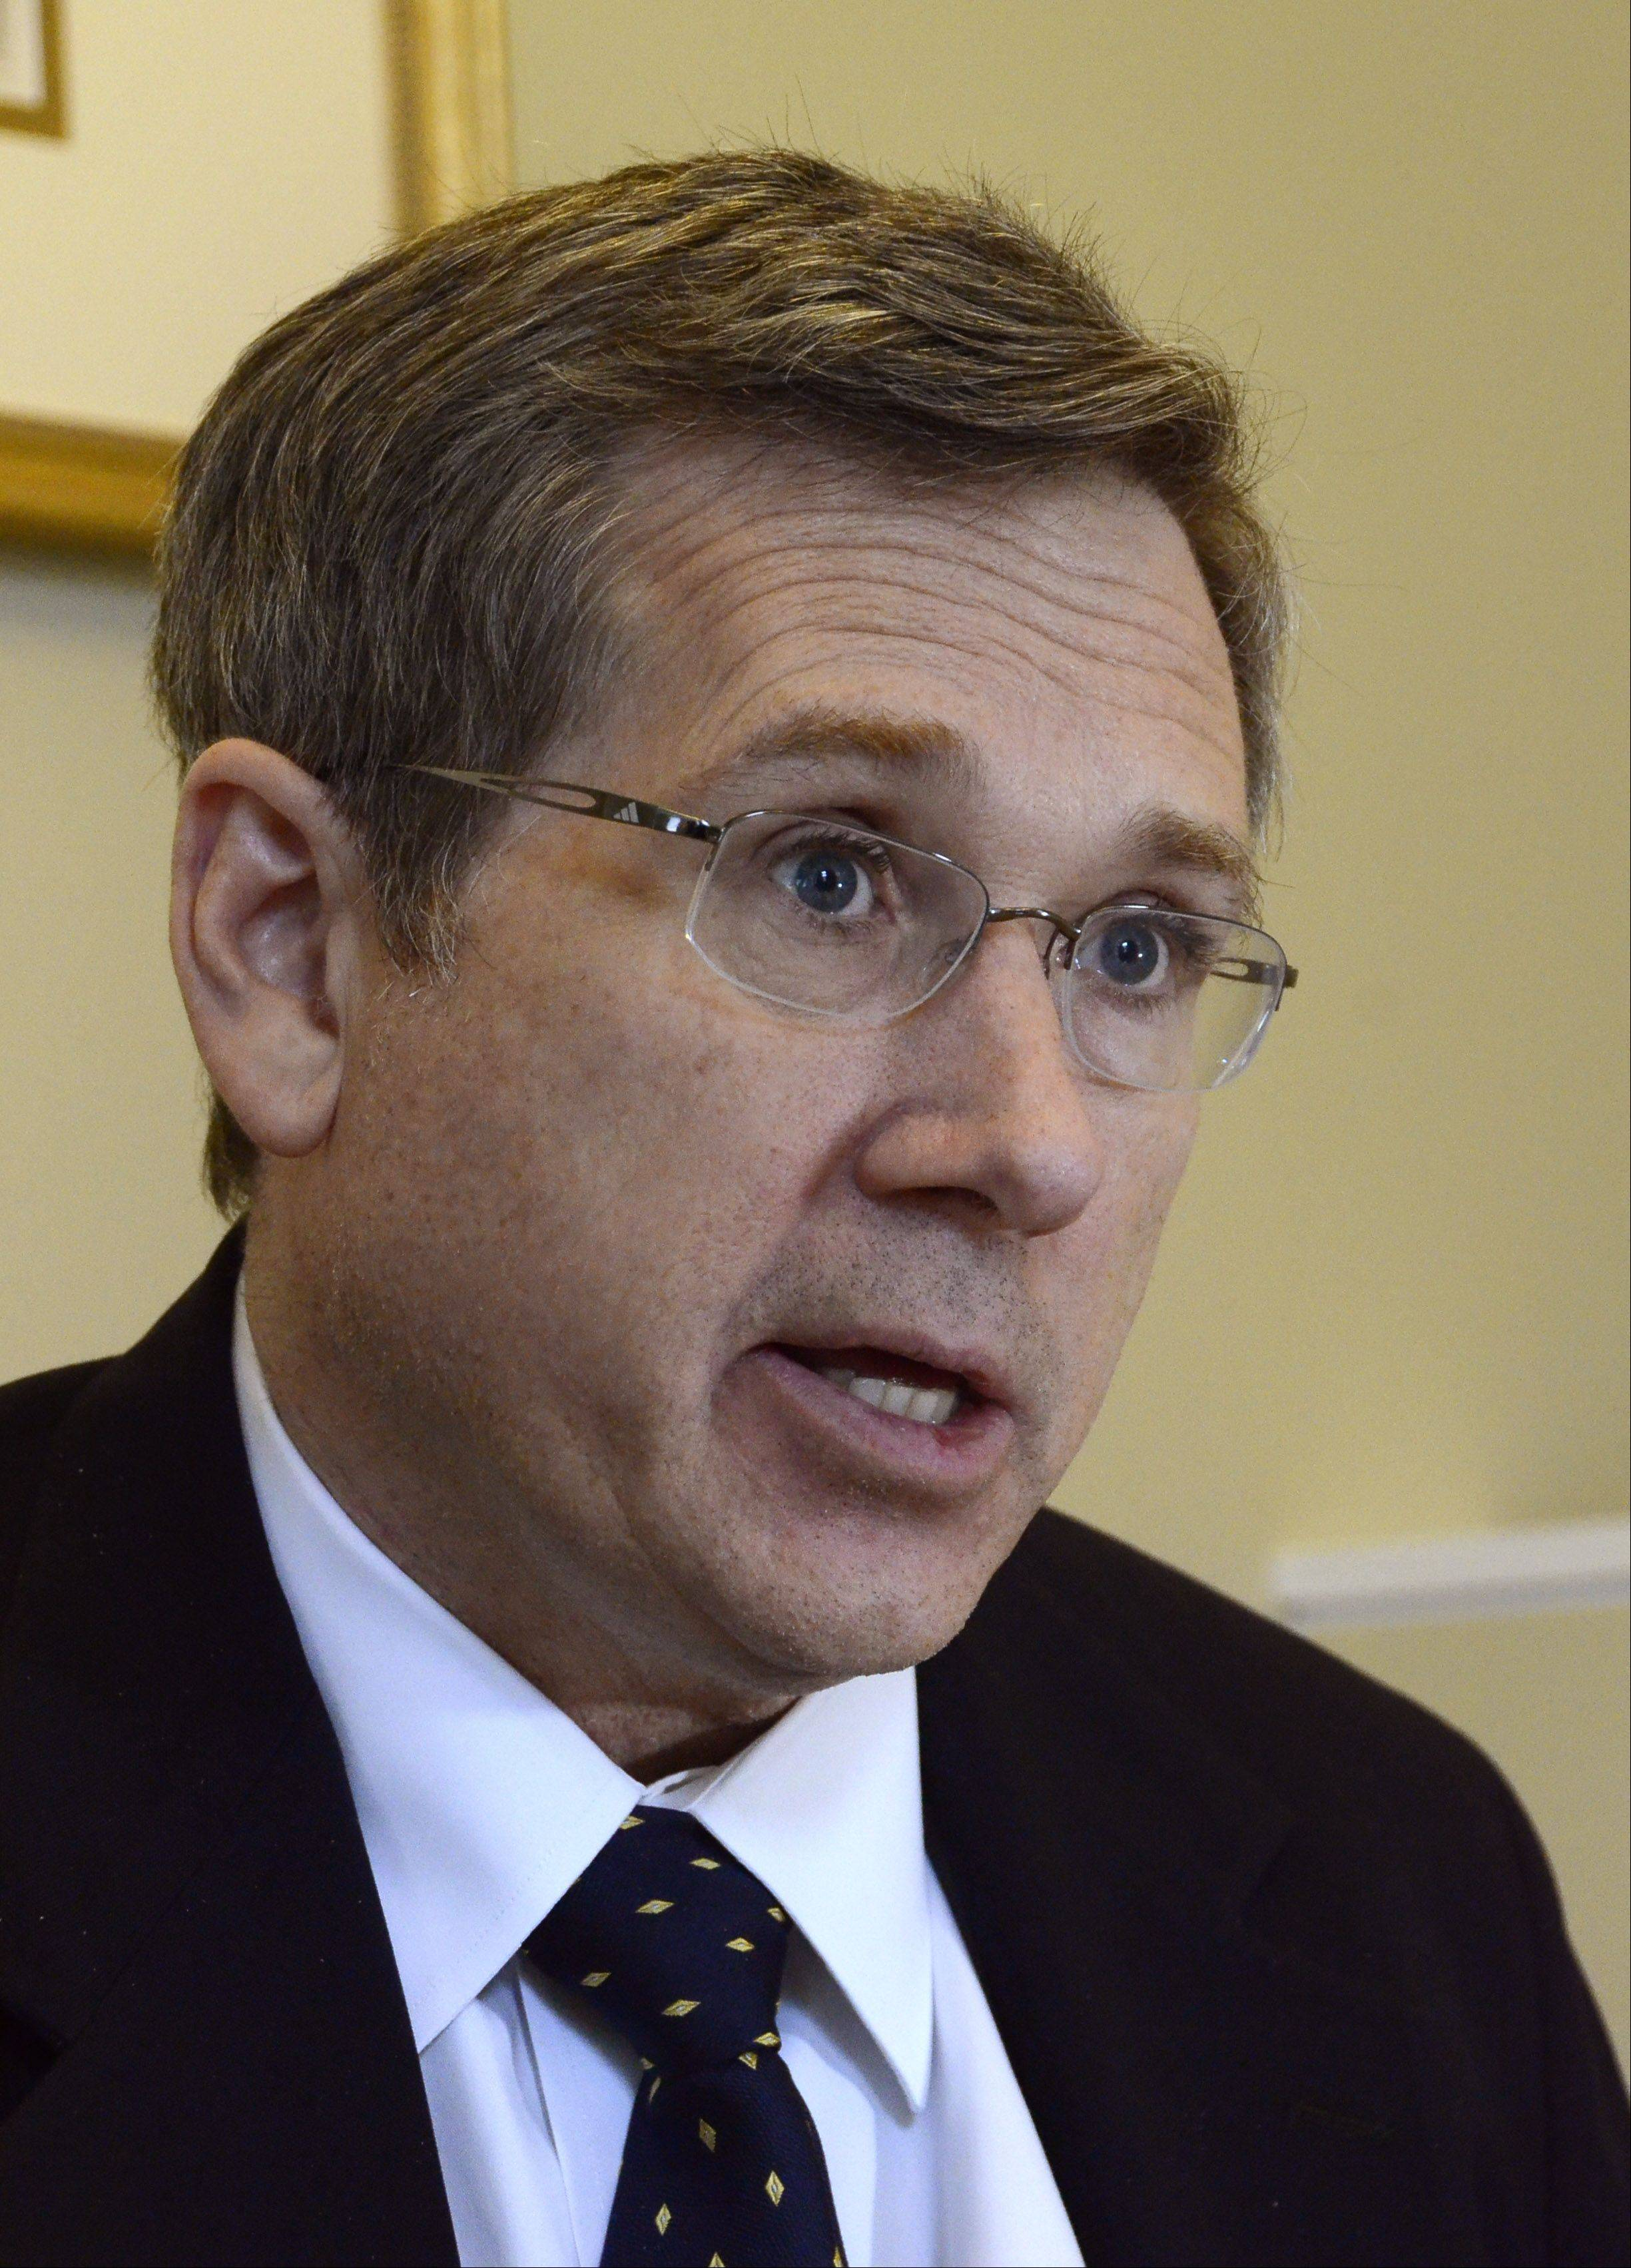 Sen. Mark Kirk spoke on the Senate floor for the first time since his stroke, talking against job discrimination against gays and lesbians.